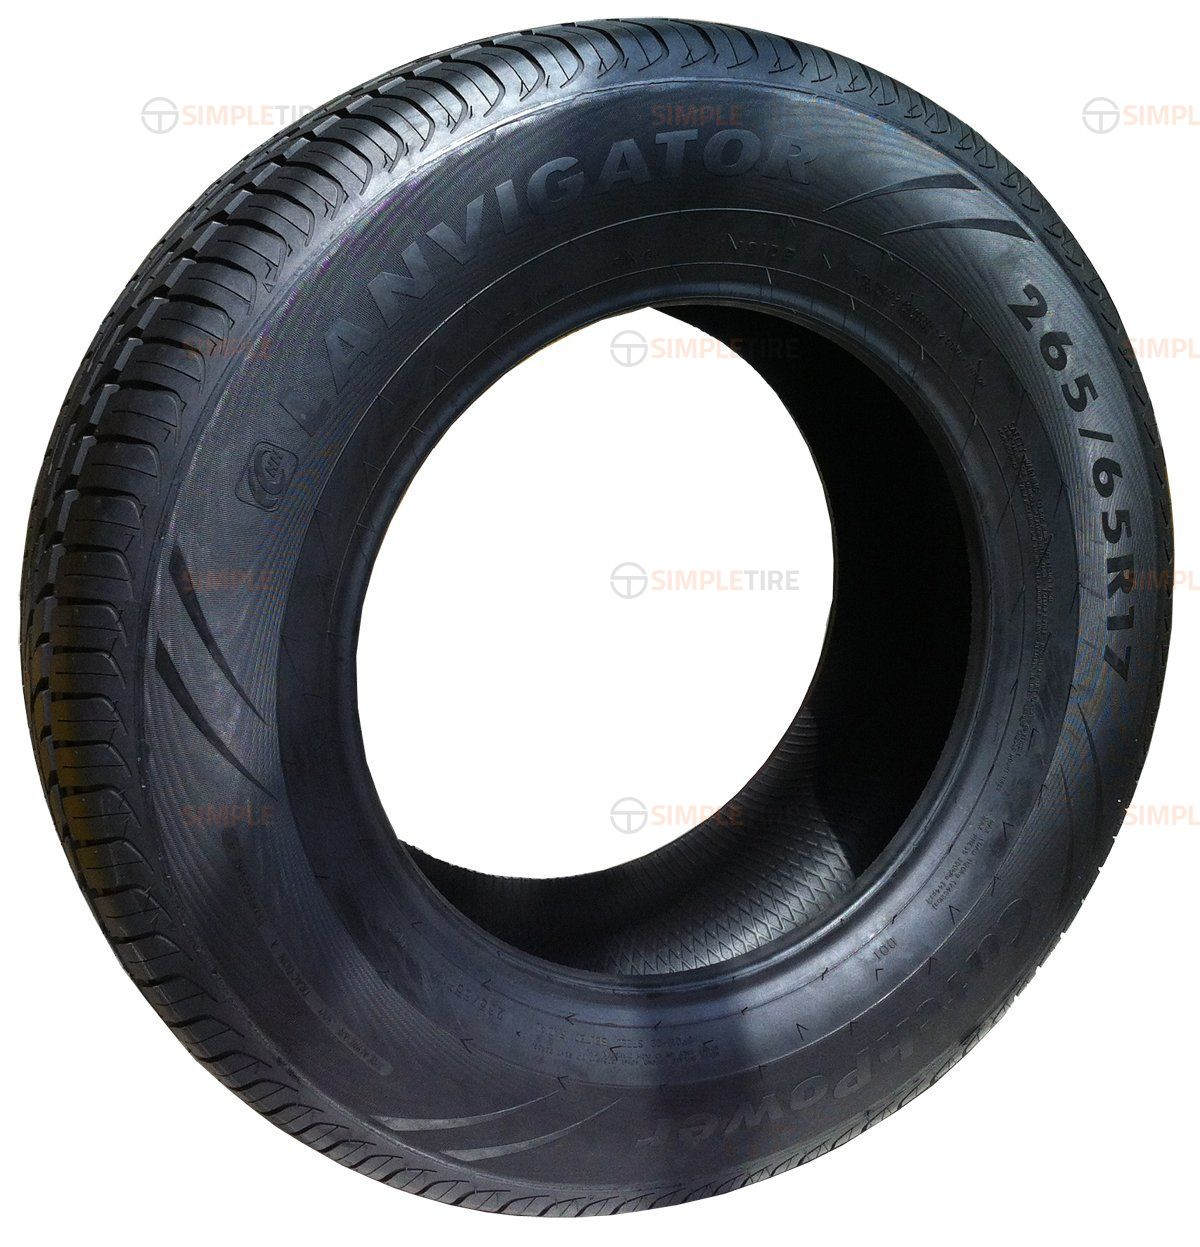 5536773 P255/65R17 Catch Power Lanvigator